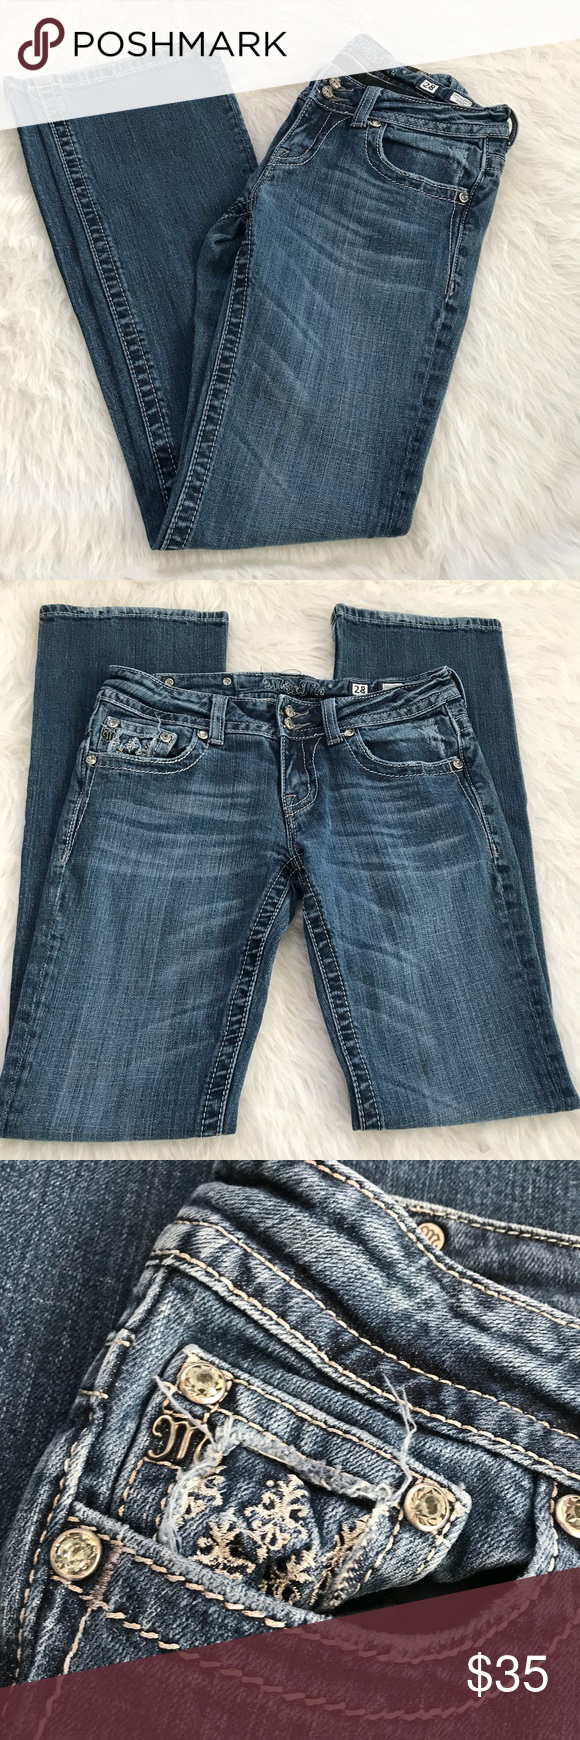 19 Lovely Miss Me Jeans Size Conversion